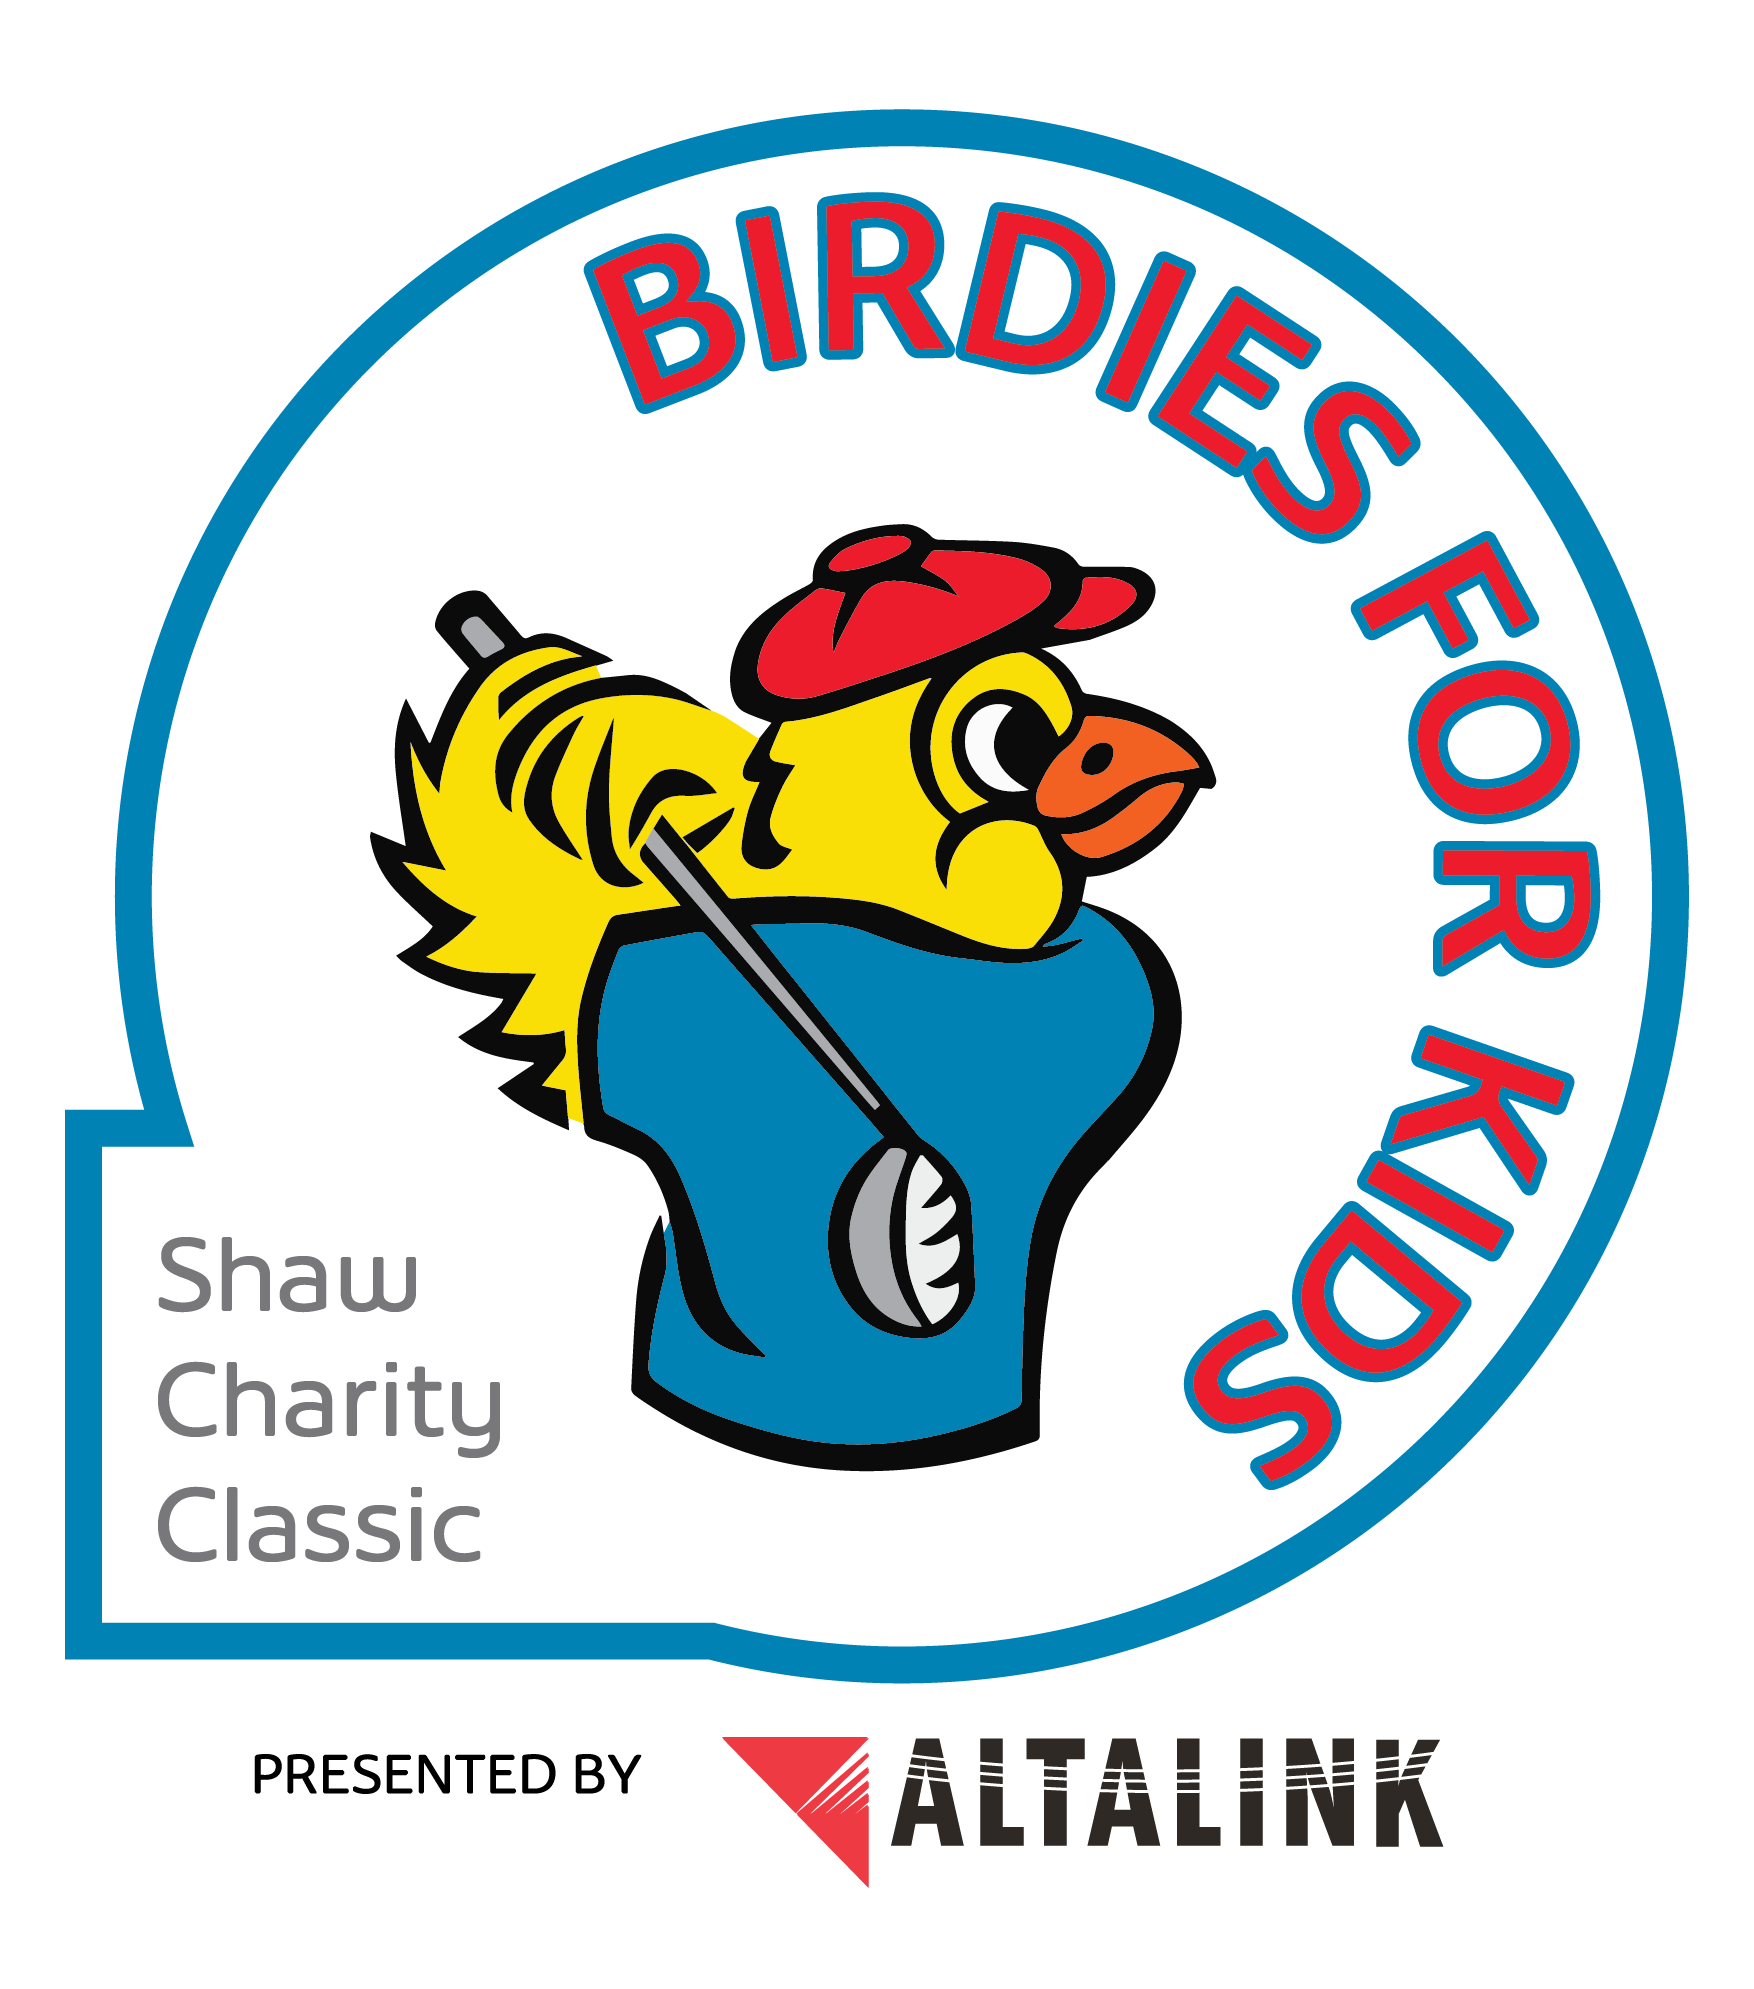 Birdies for Kids - Full Colour Words.png